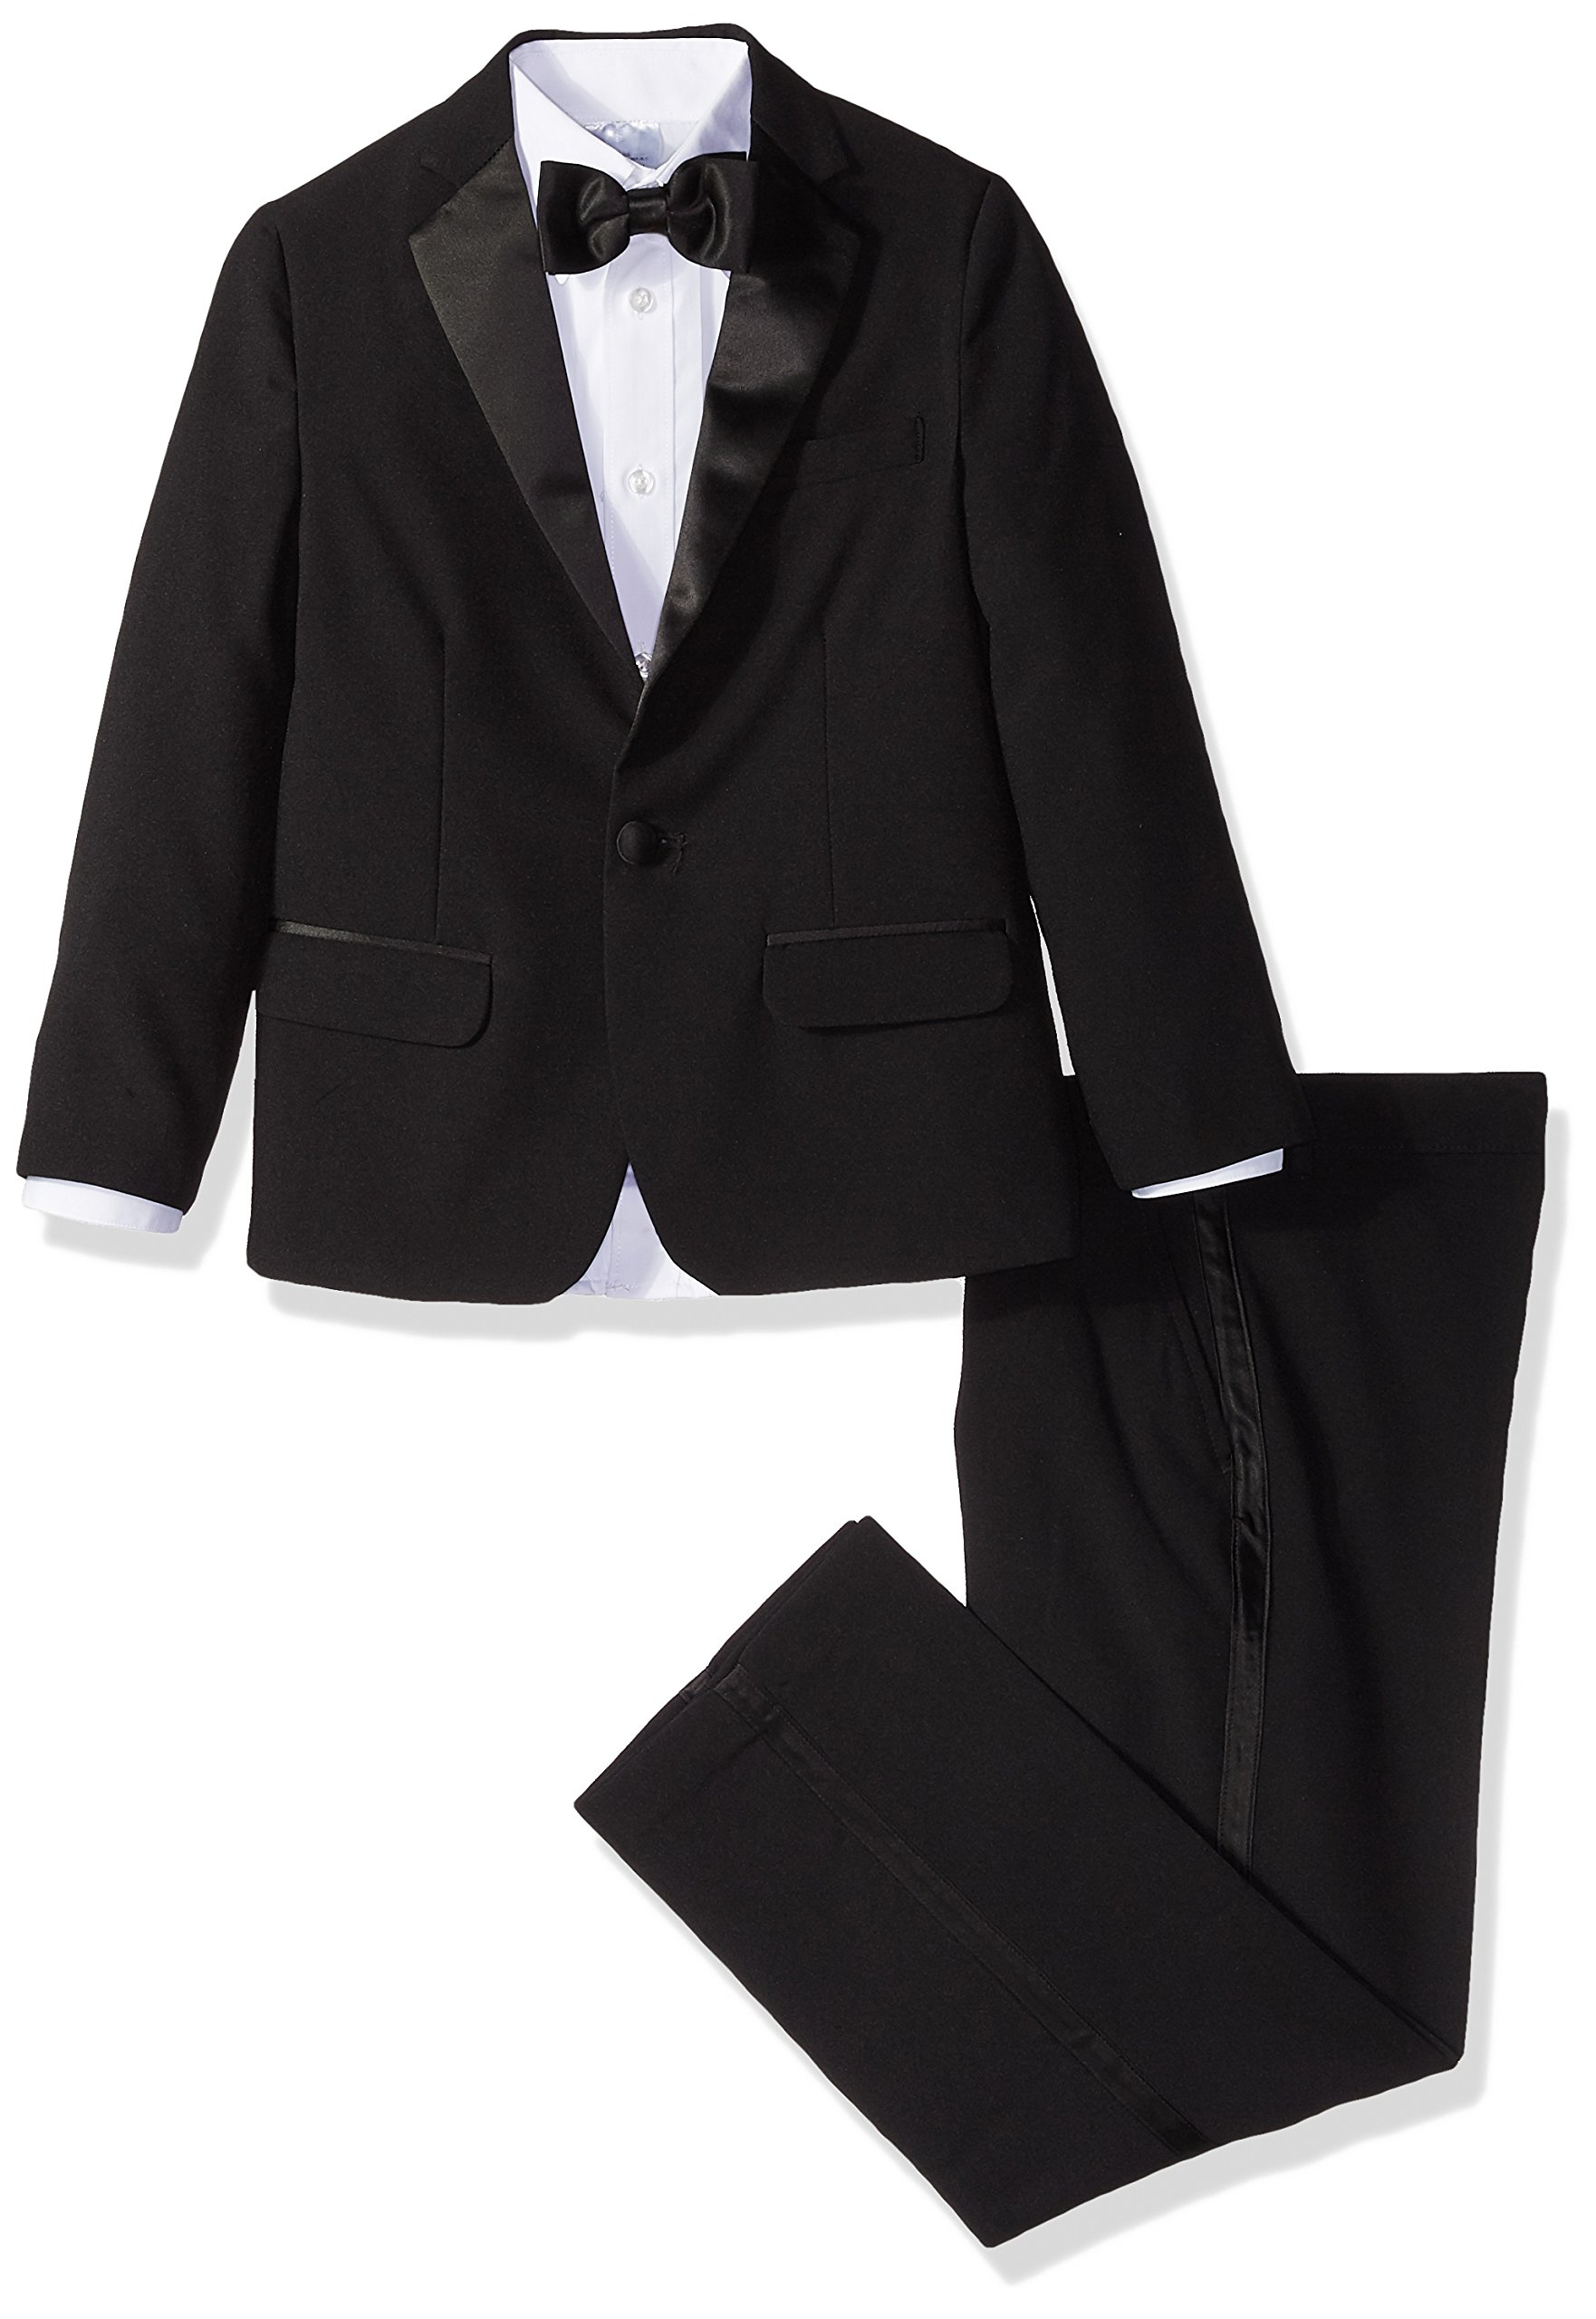 Izod boys 4-Piece Formal Tuxedo Set with Jacket, Pants, Shirt, and Bow Tie, Black, 8